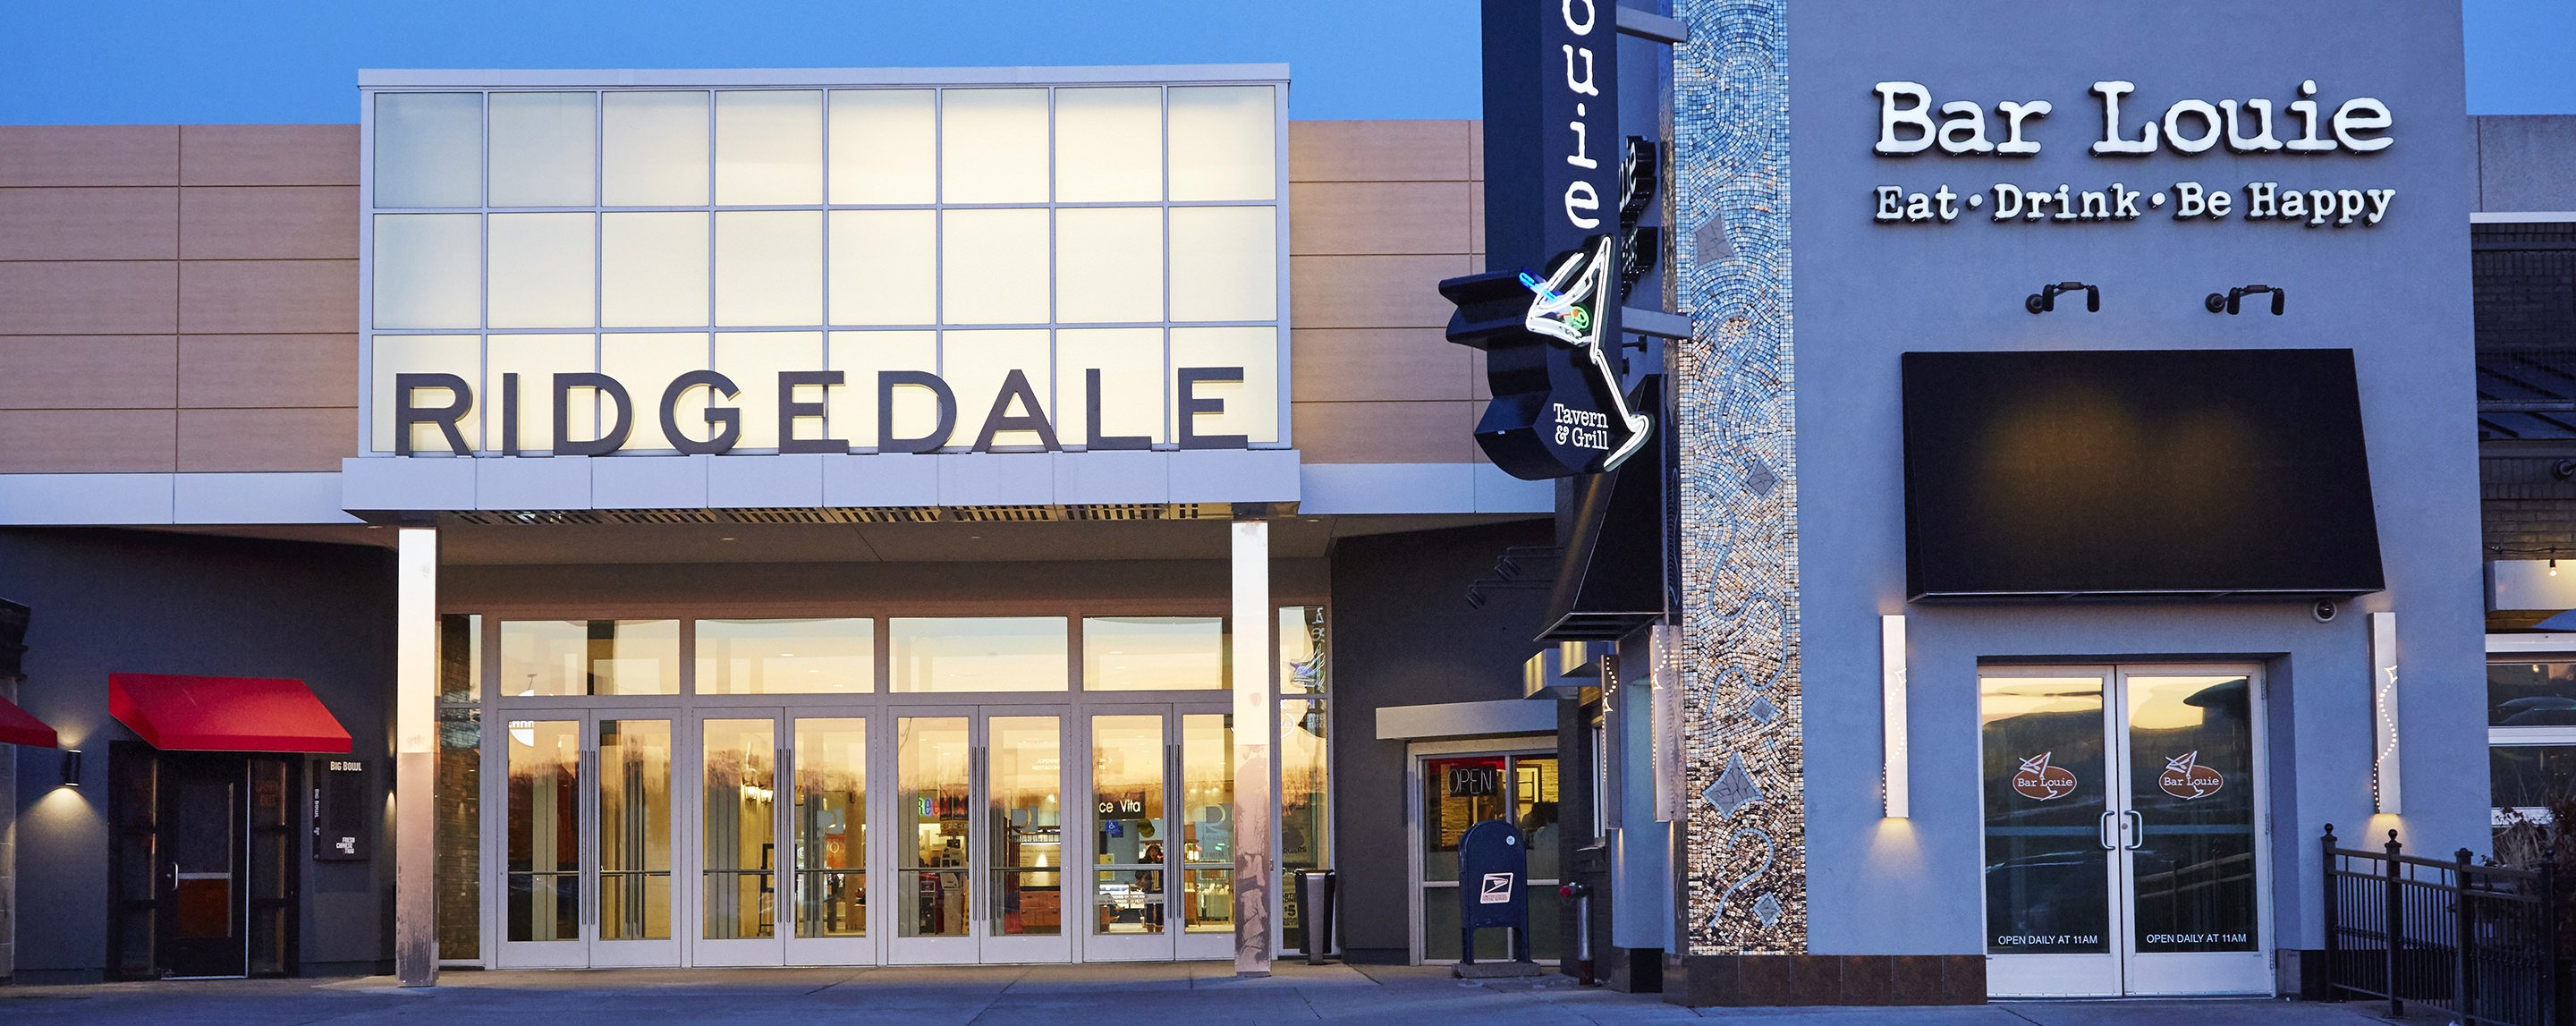 A Ridgedale store and a Bar Louie restaurant neighbor each other in a commercial neighborhood.